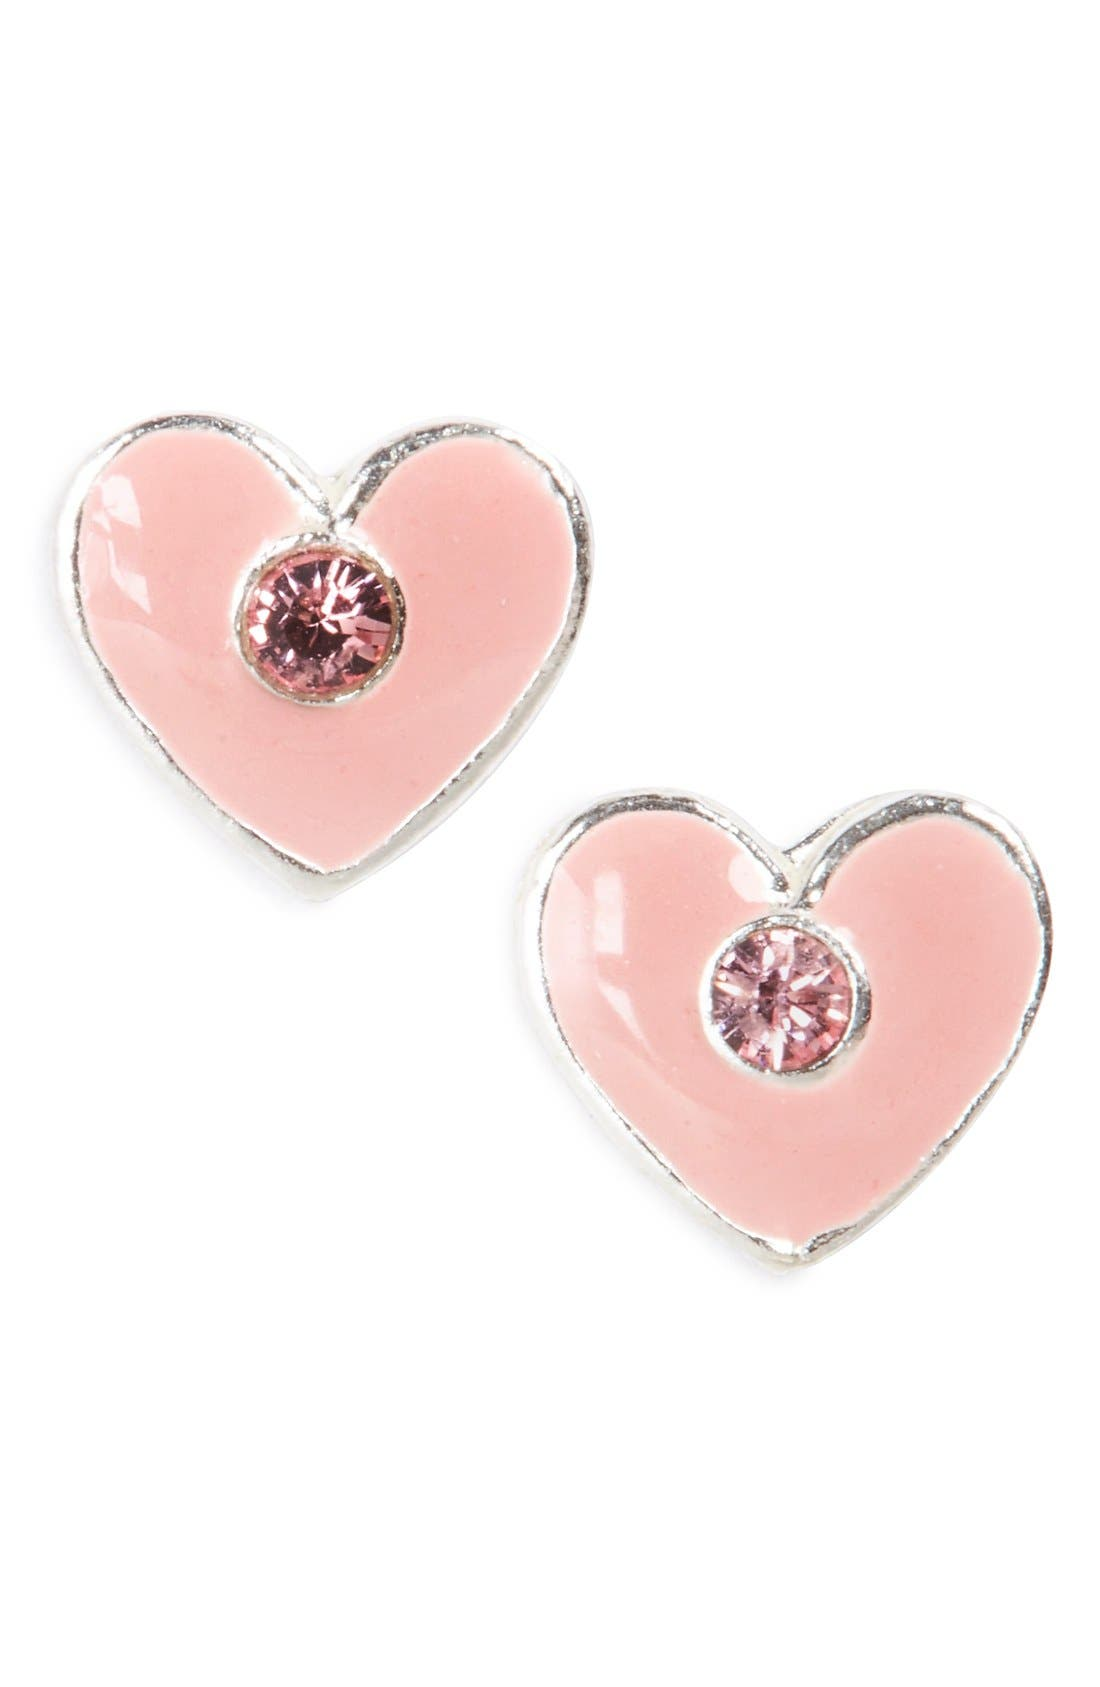 'Crystal Heart' Sterling Silver Stud Earrings,                             Main thumbnail 1, color,                             Silver